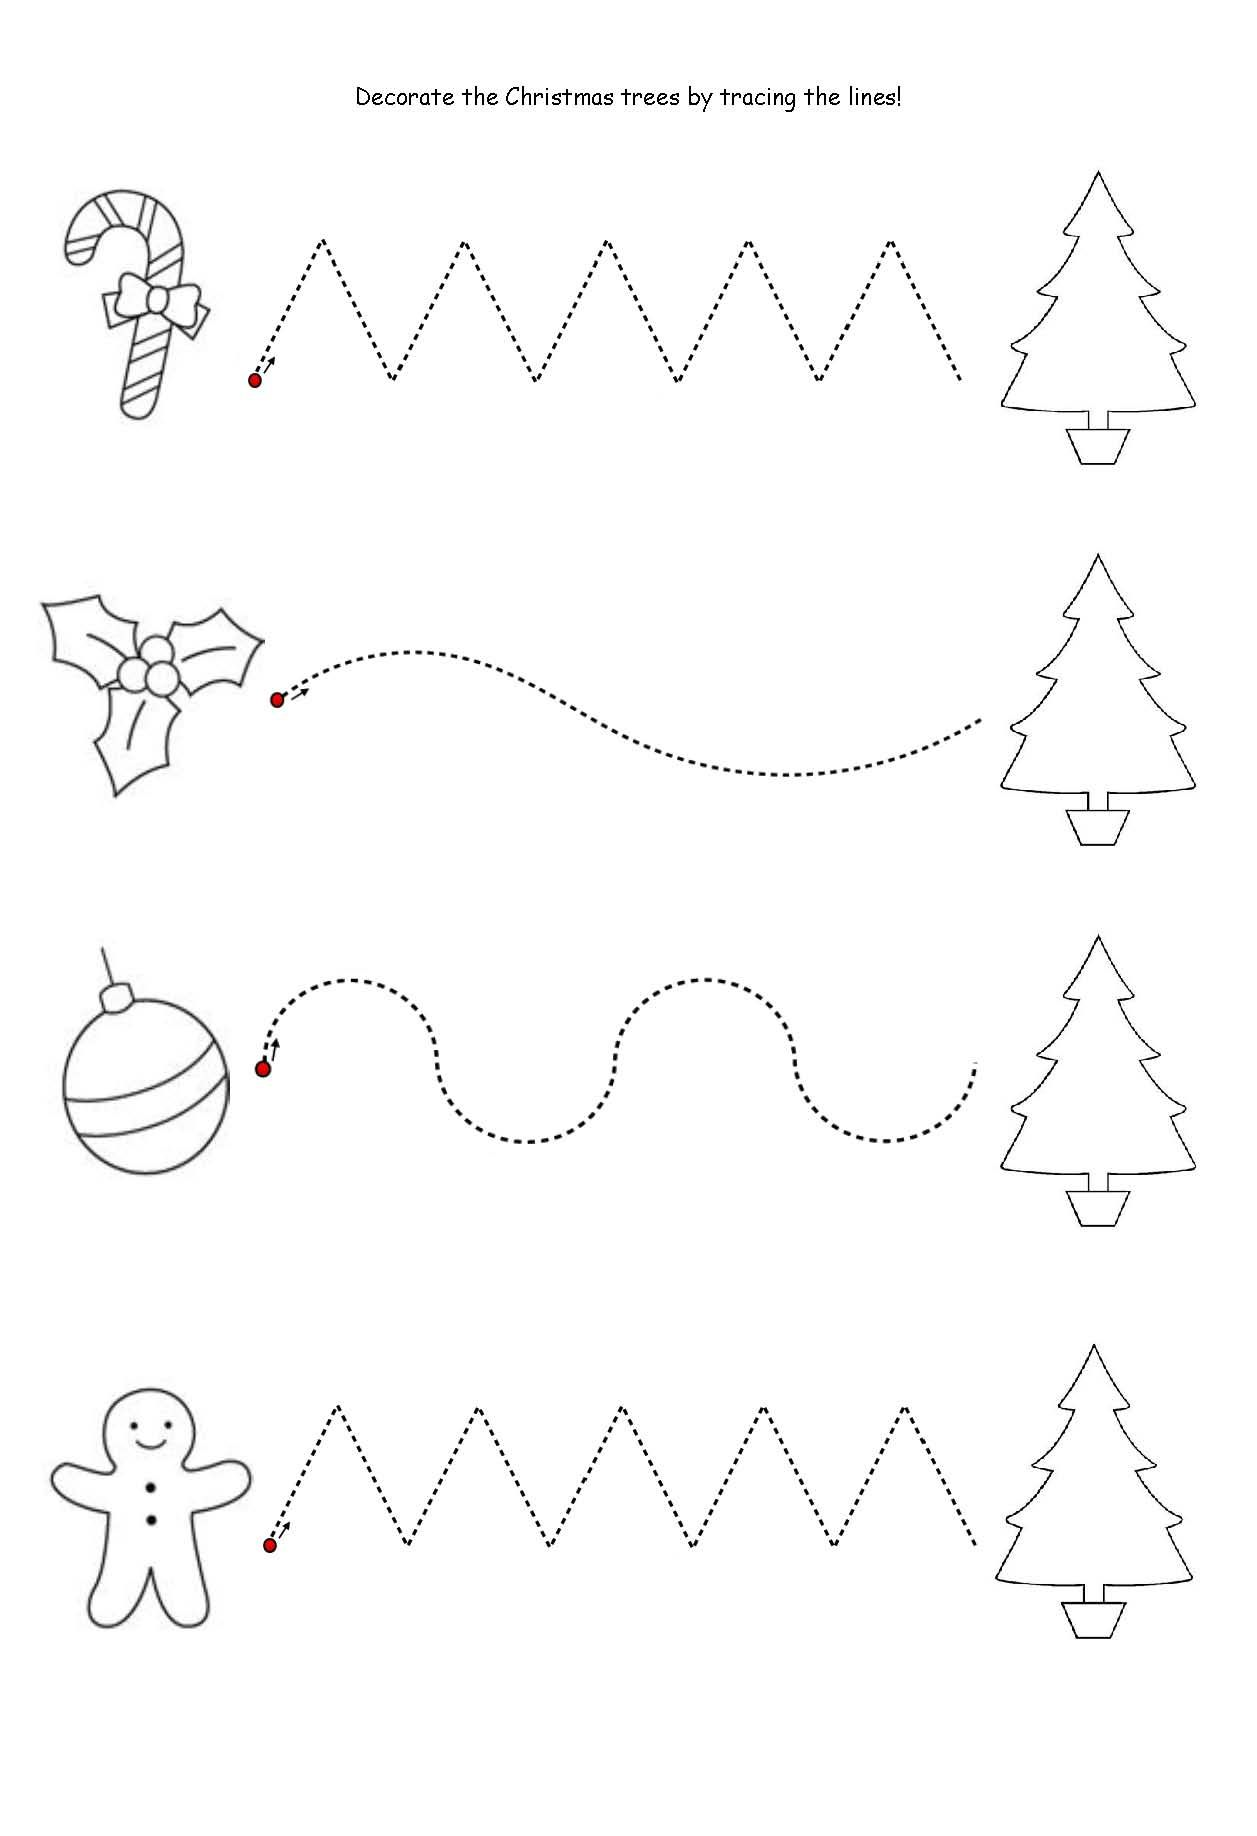 Worksheet Practice Tracing Christmas Trees